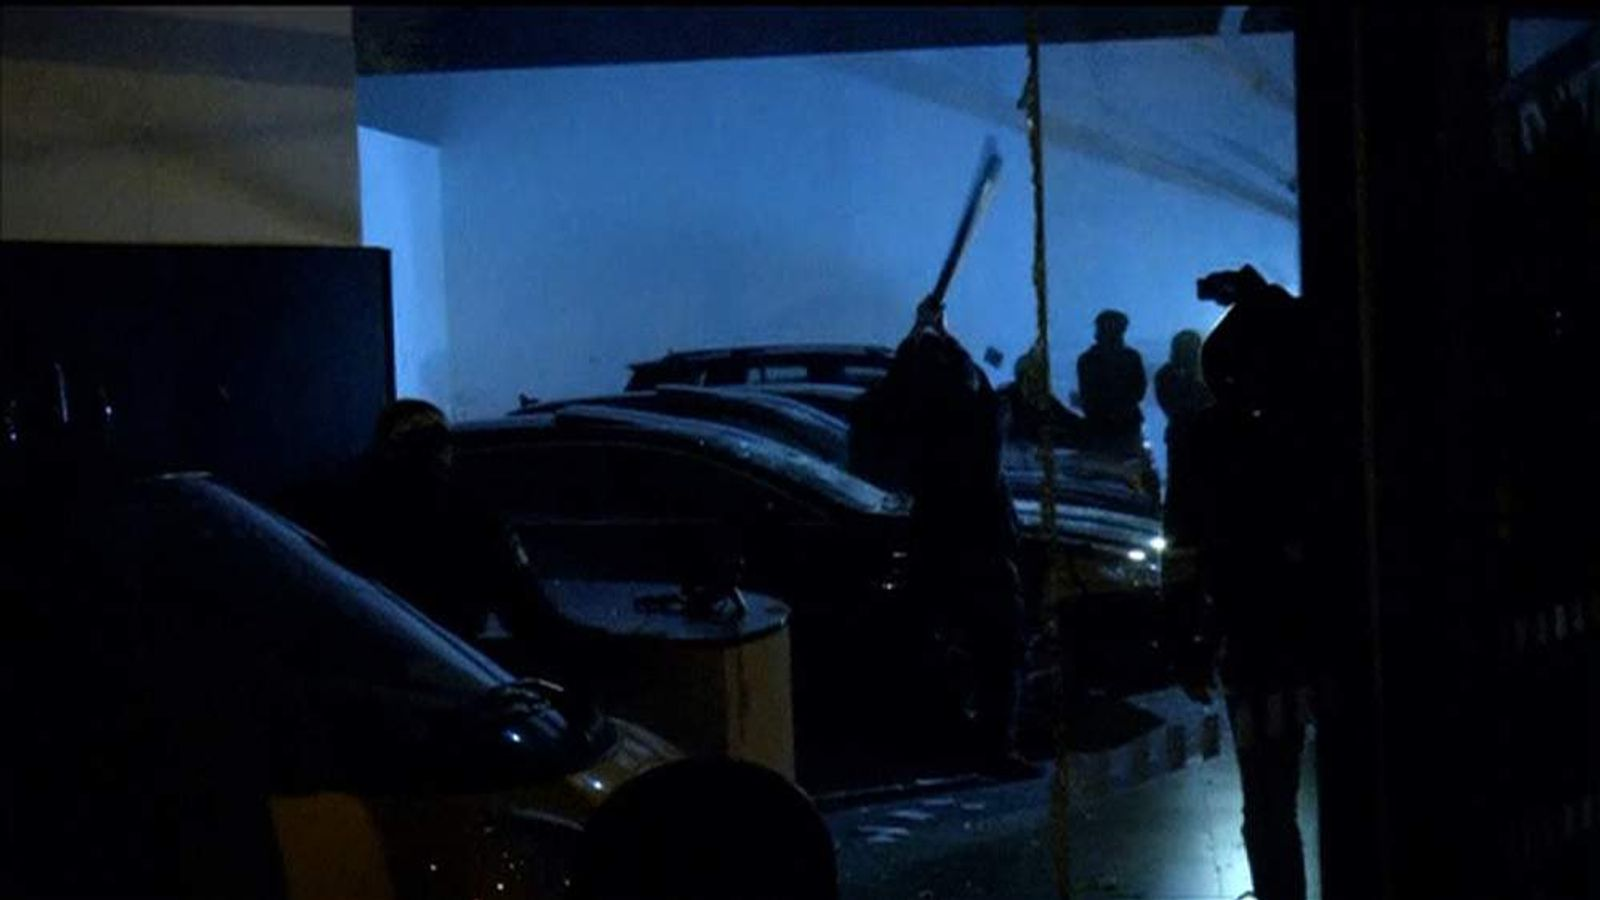 Protesters smash up luxury vehicles in a car dealership in Sao Paulo, Brazil